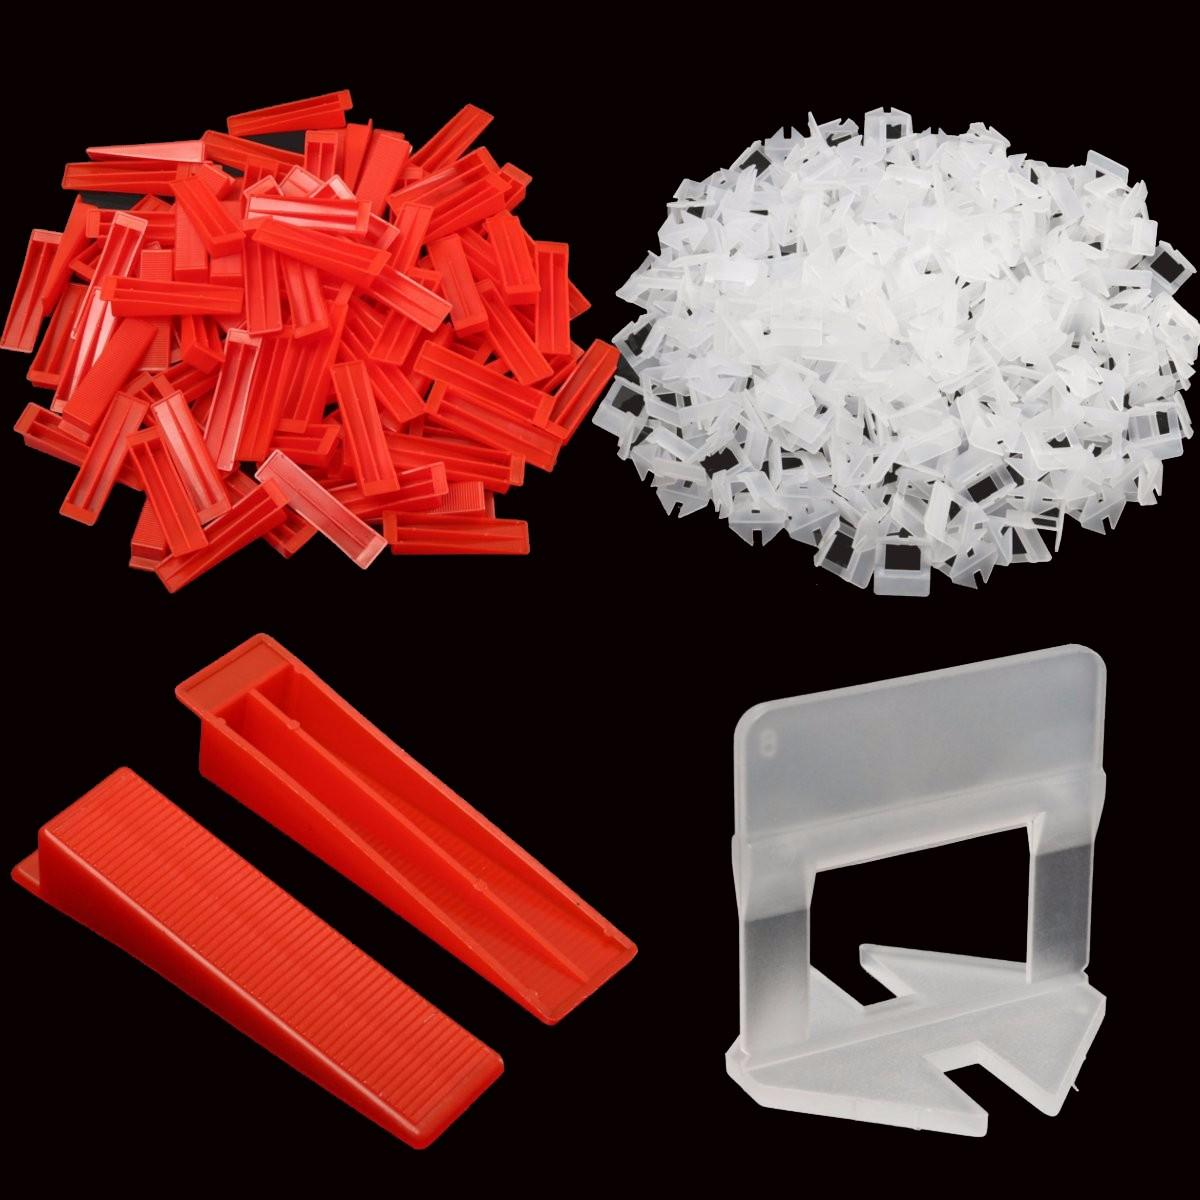 901pcs/set Tile Spacers Tiling Leveling System 700pcs Clips and 200pcs Wedges with 1pc Plier Floor Spacer